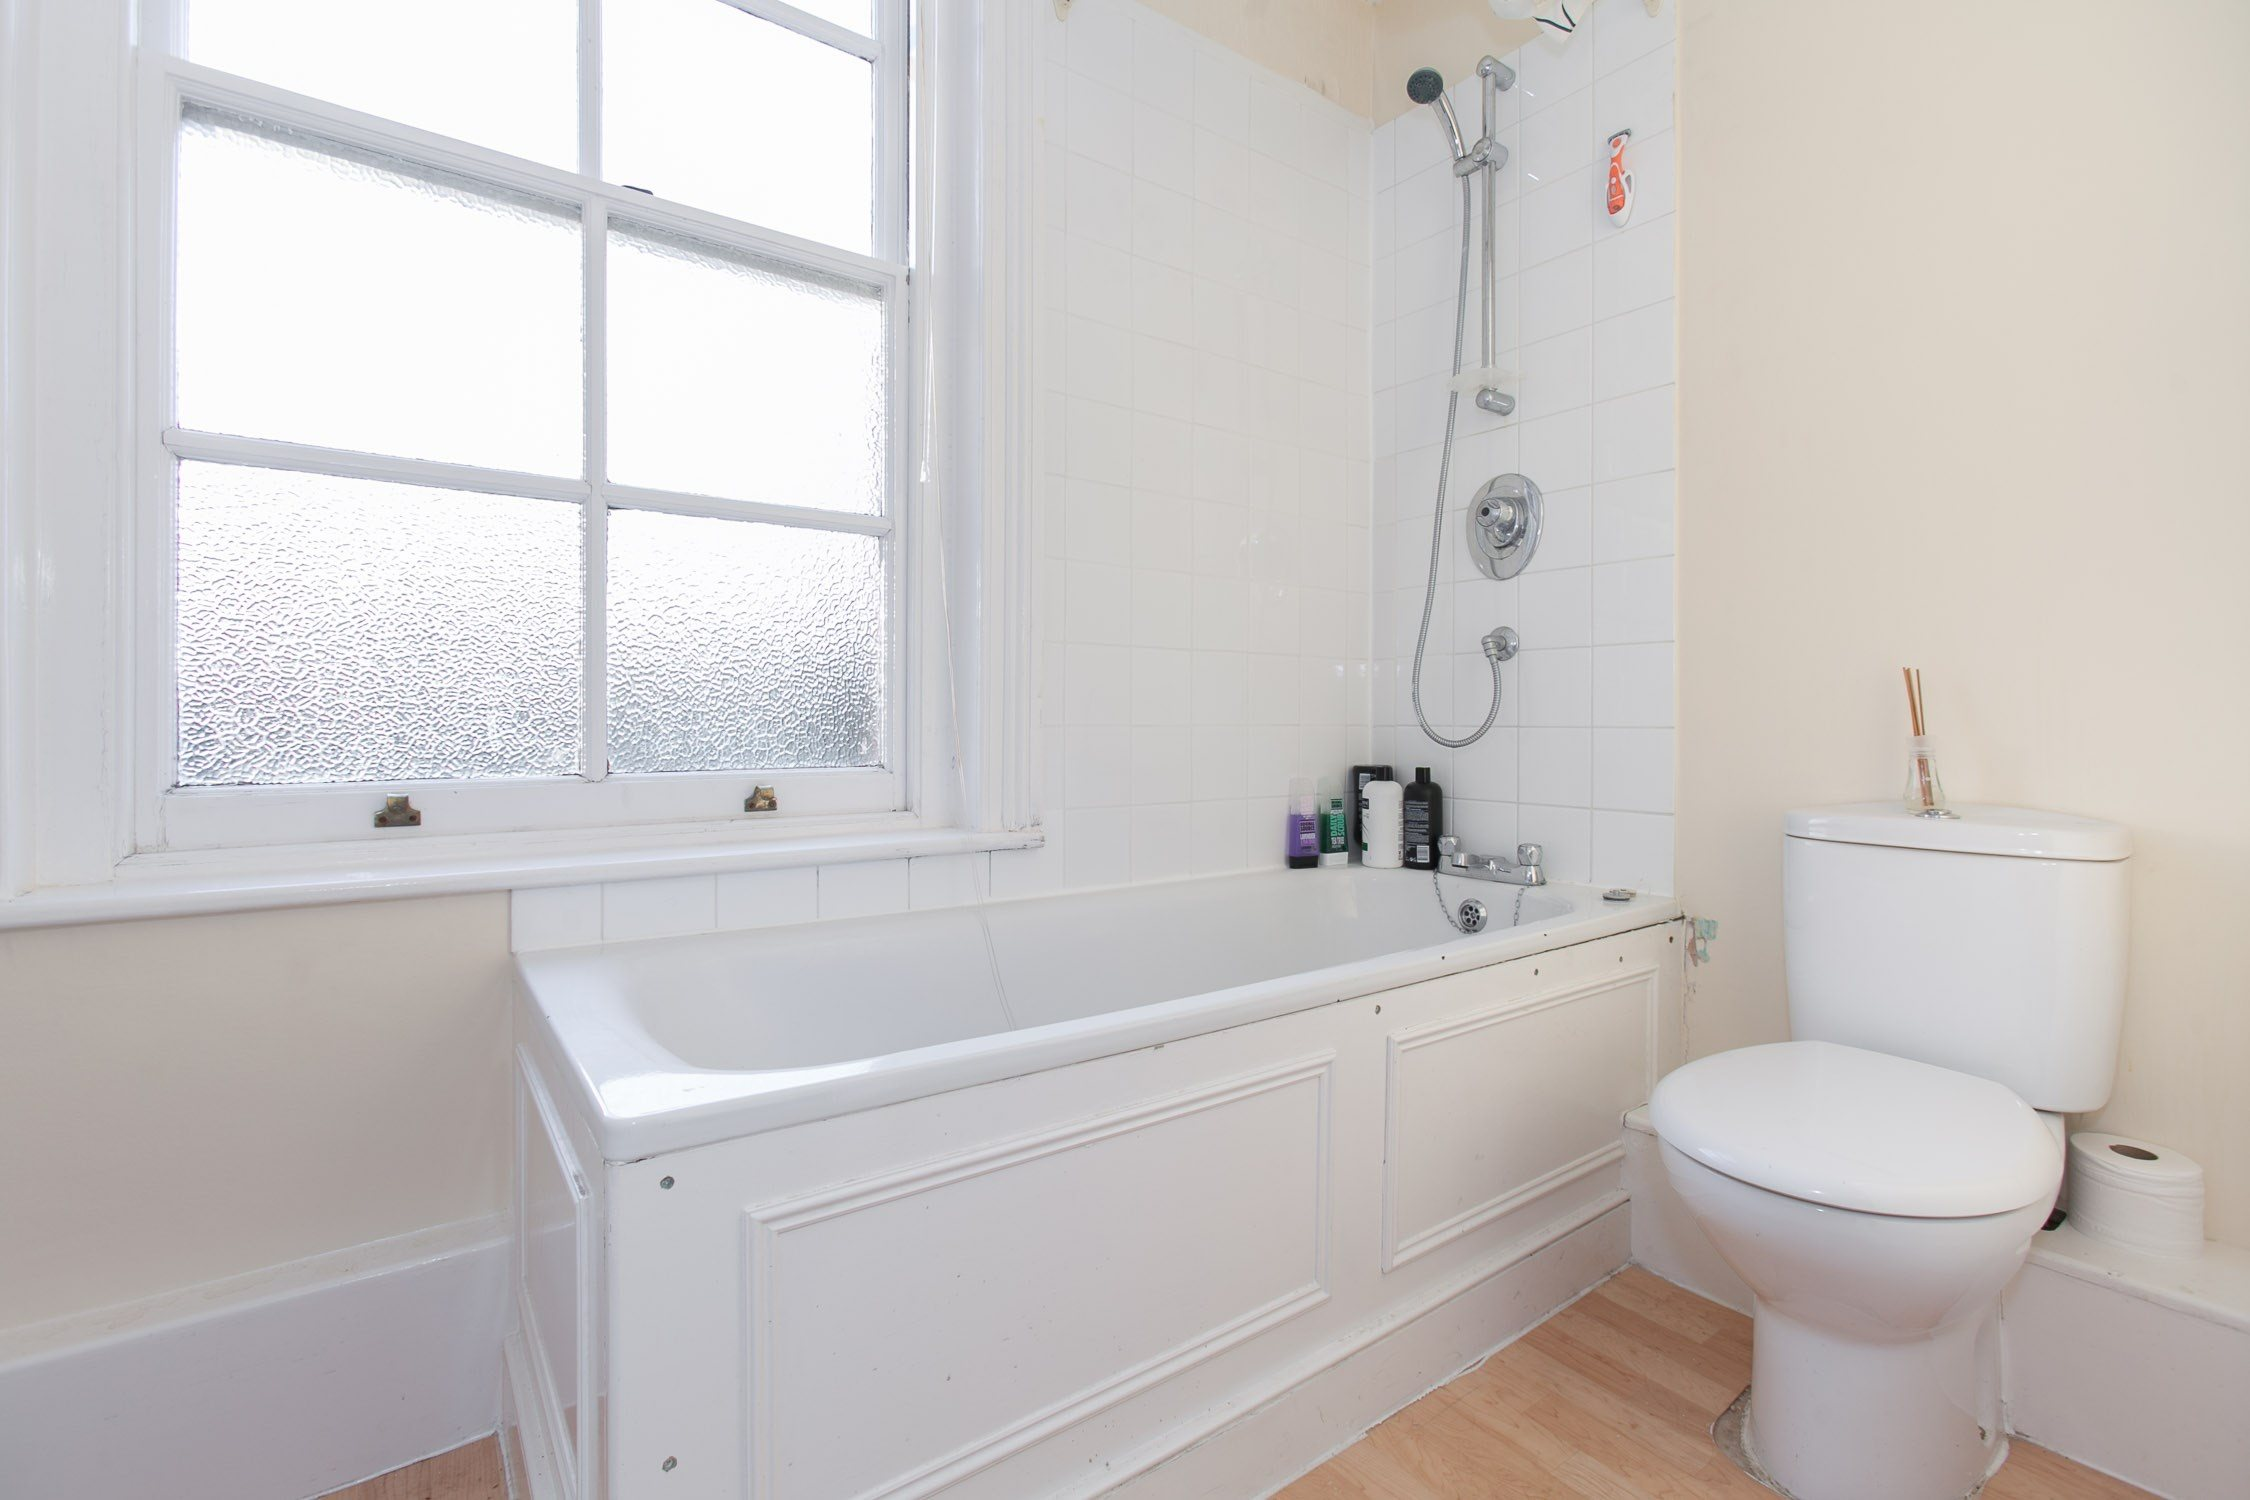 1 Bedroom Flat To Rent In Wandsworth 28 Images 1